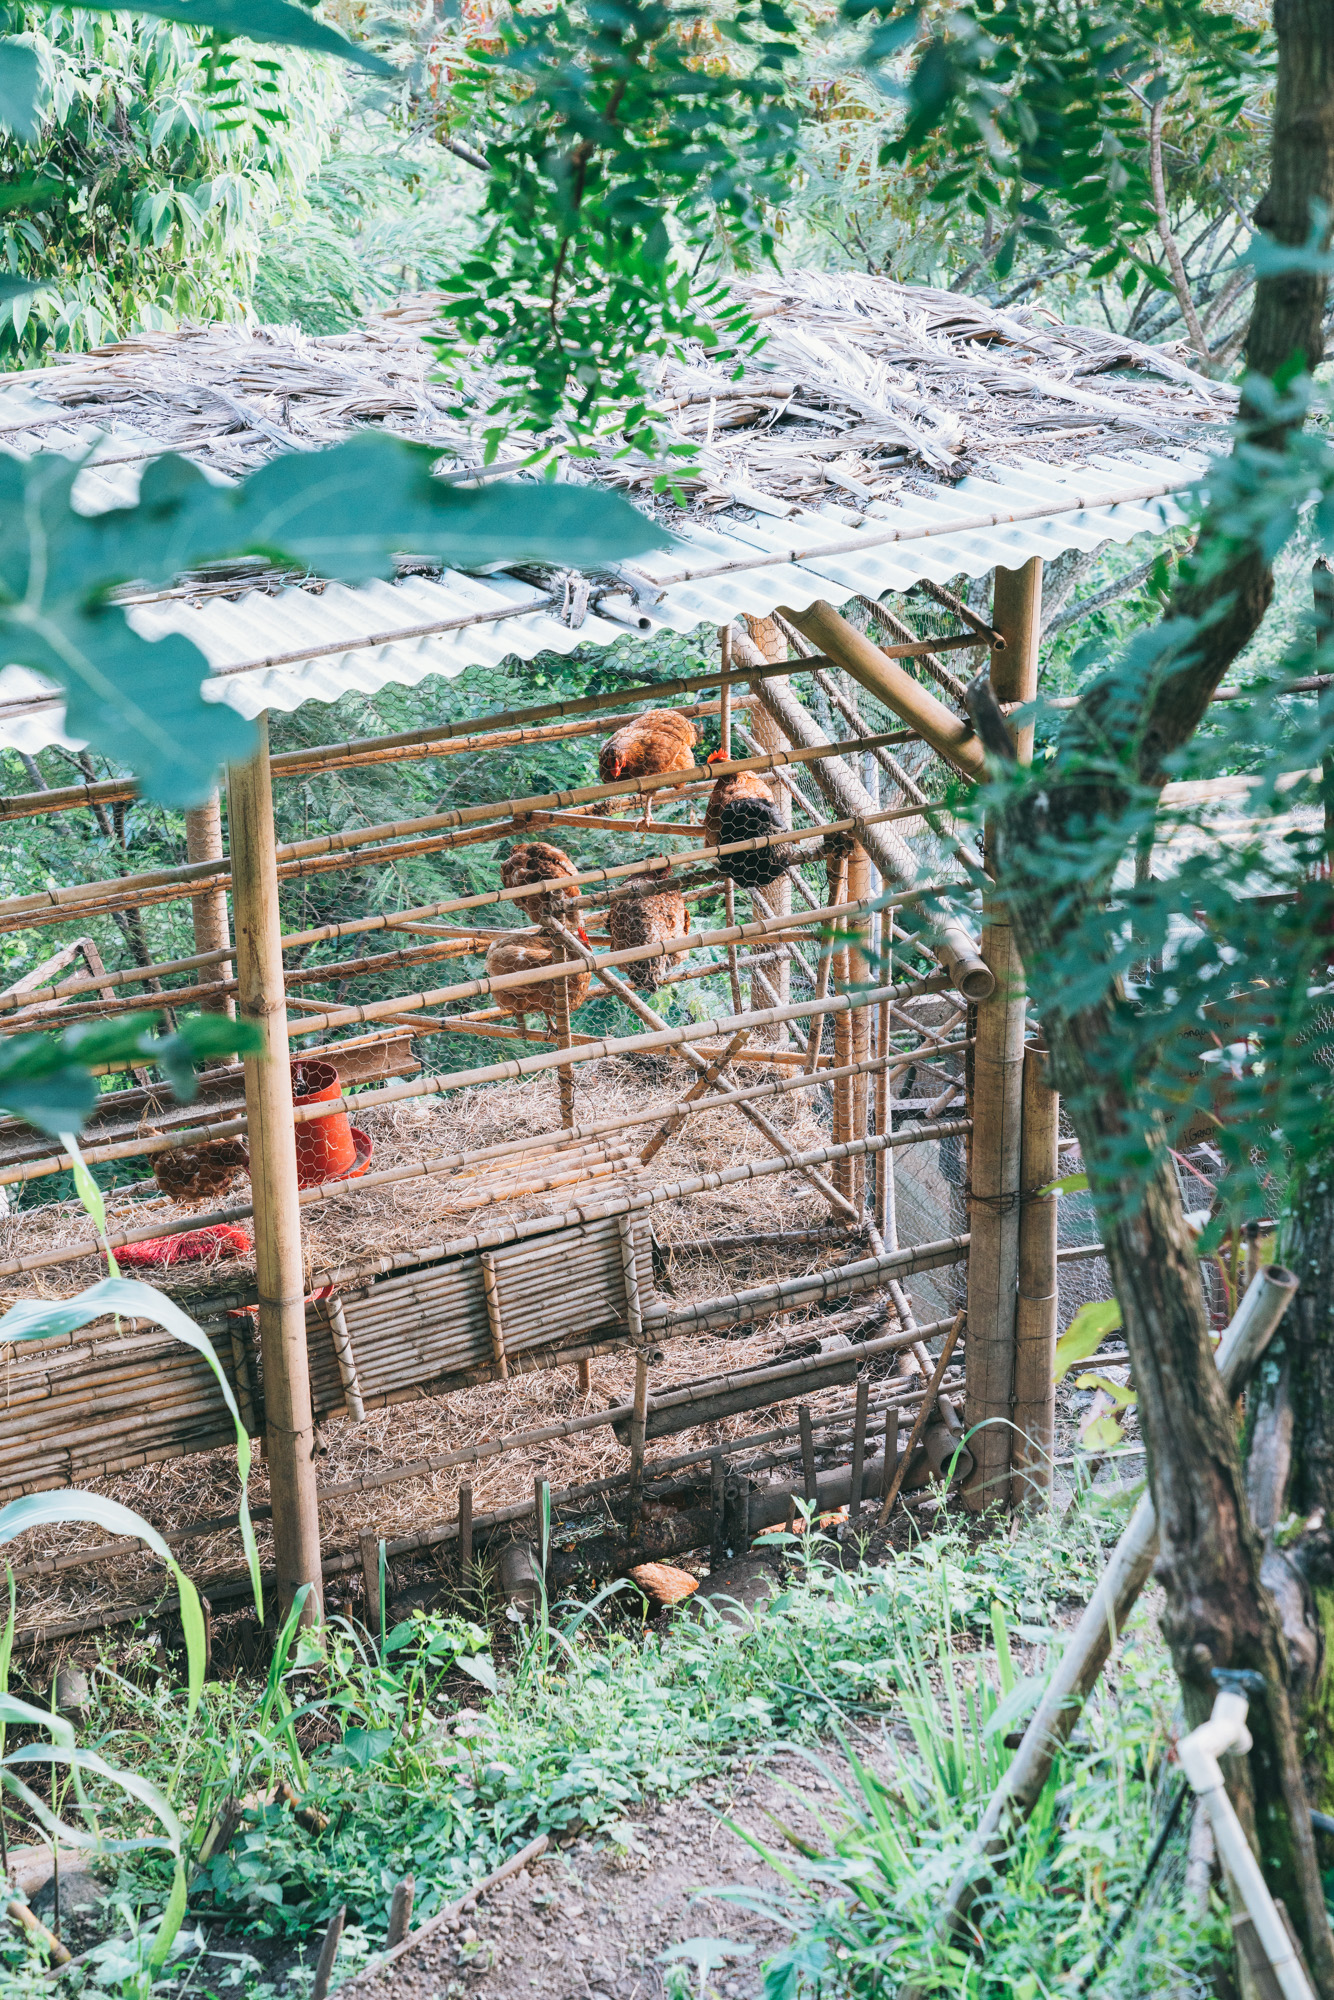 Chickens at the Yoga Forest